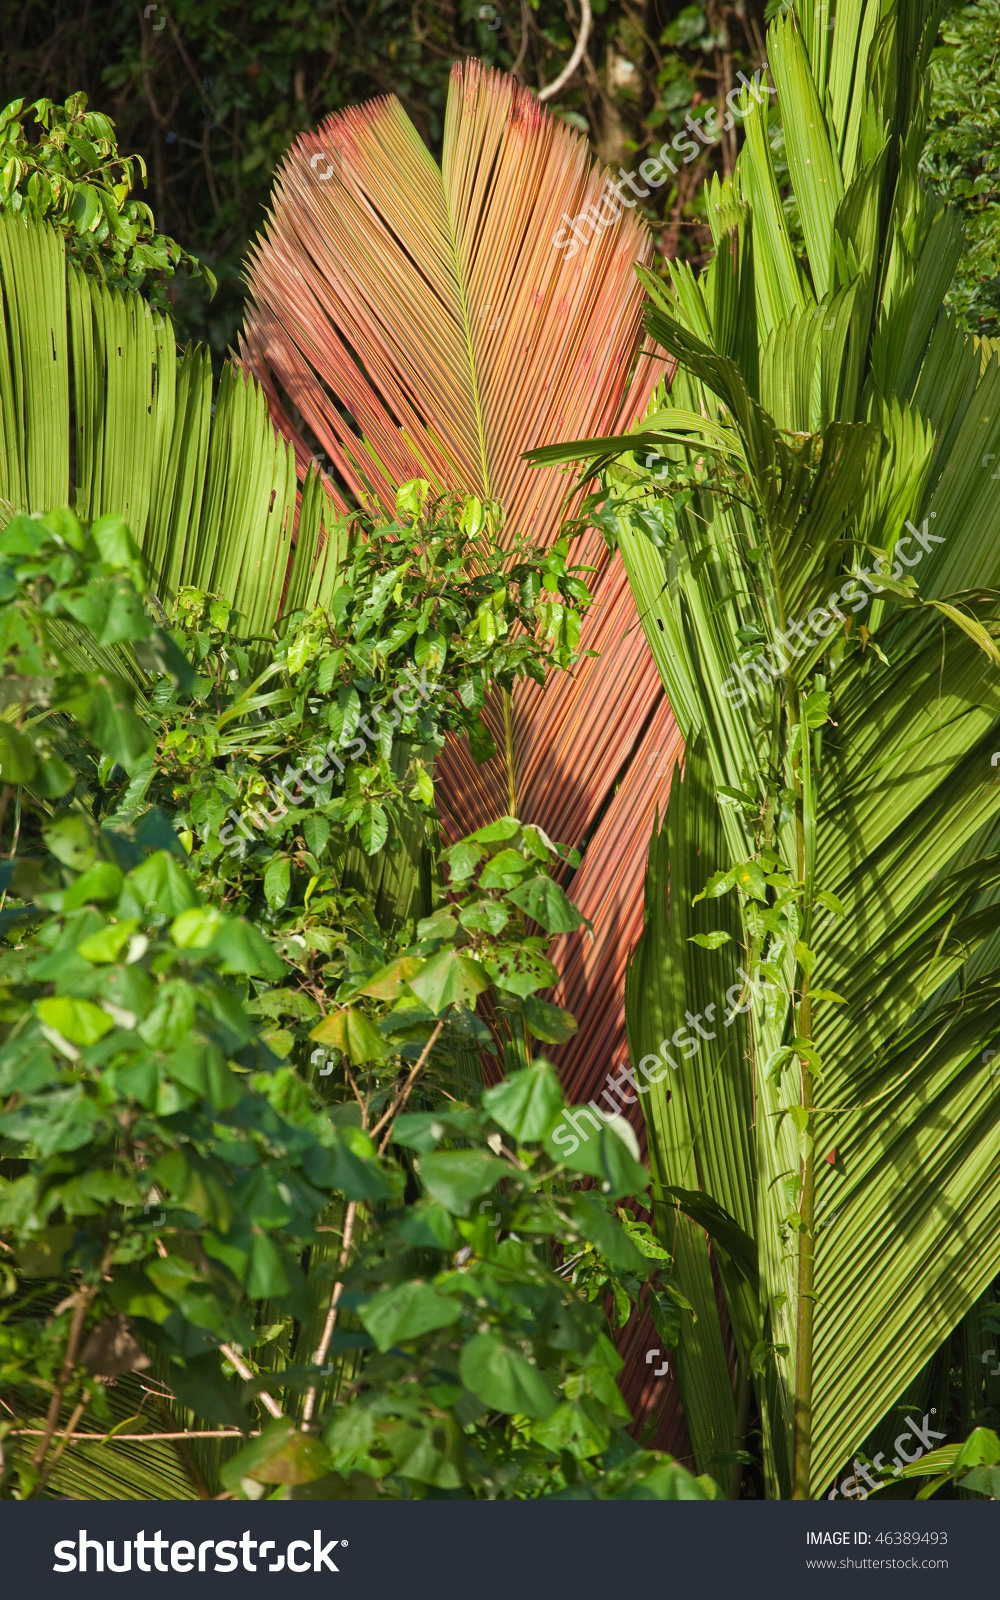 Tropical Foliage Background Of Palm Trees And Vines Of Tortuguero.